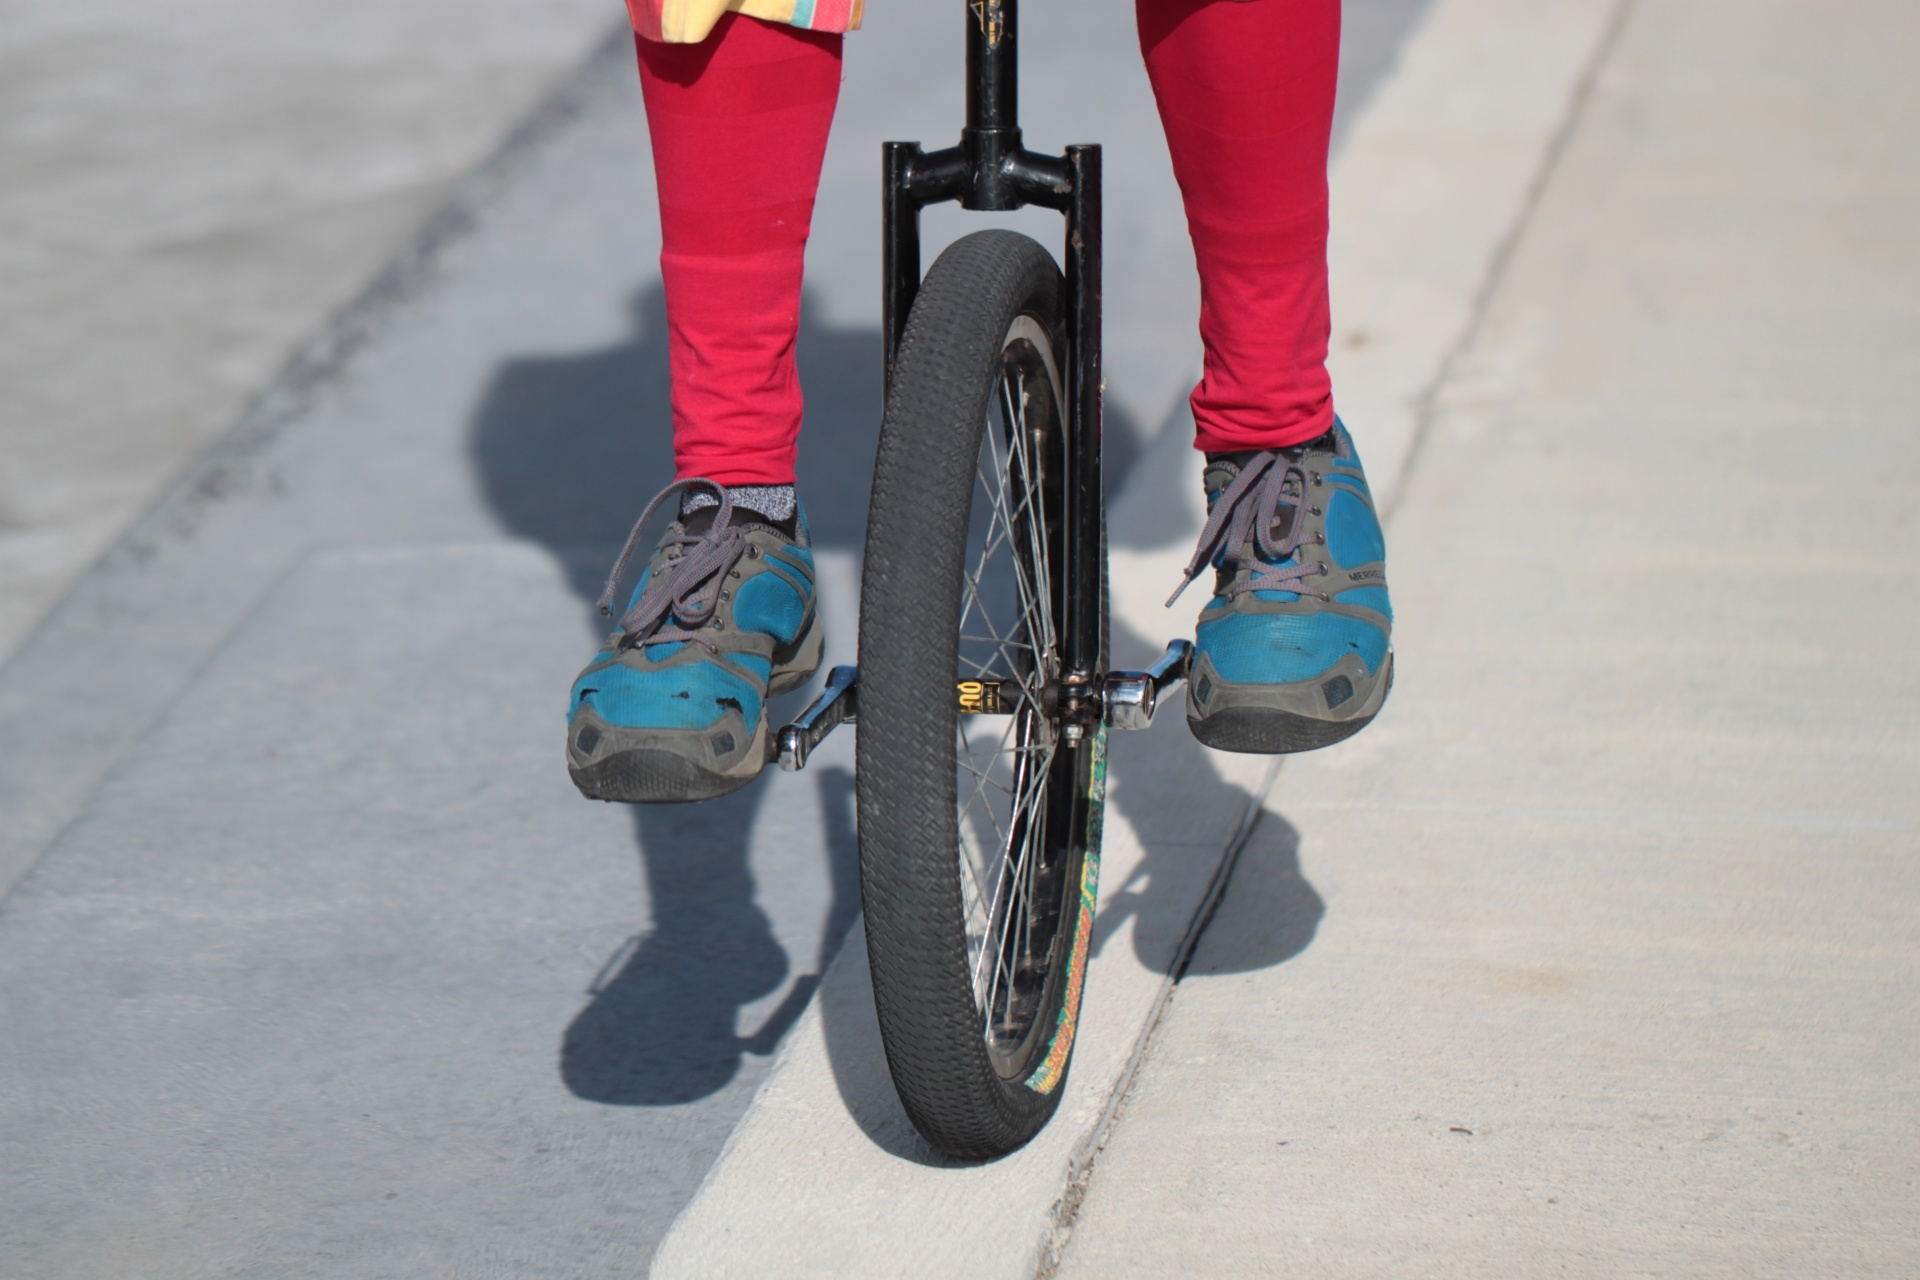 A unicycle, similar to this one, has been stolen